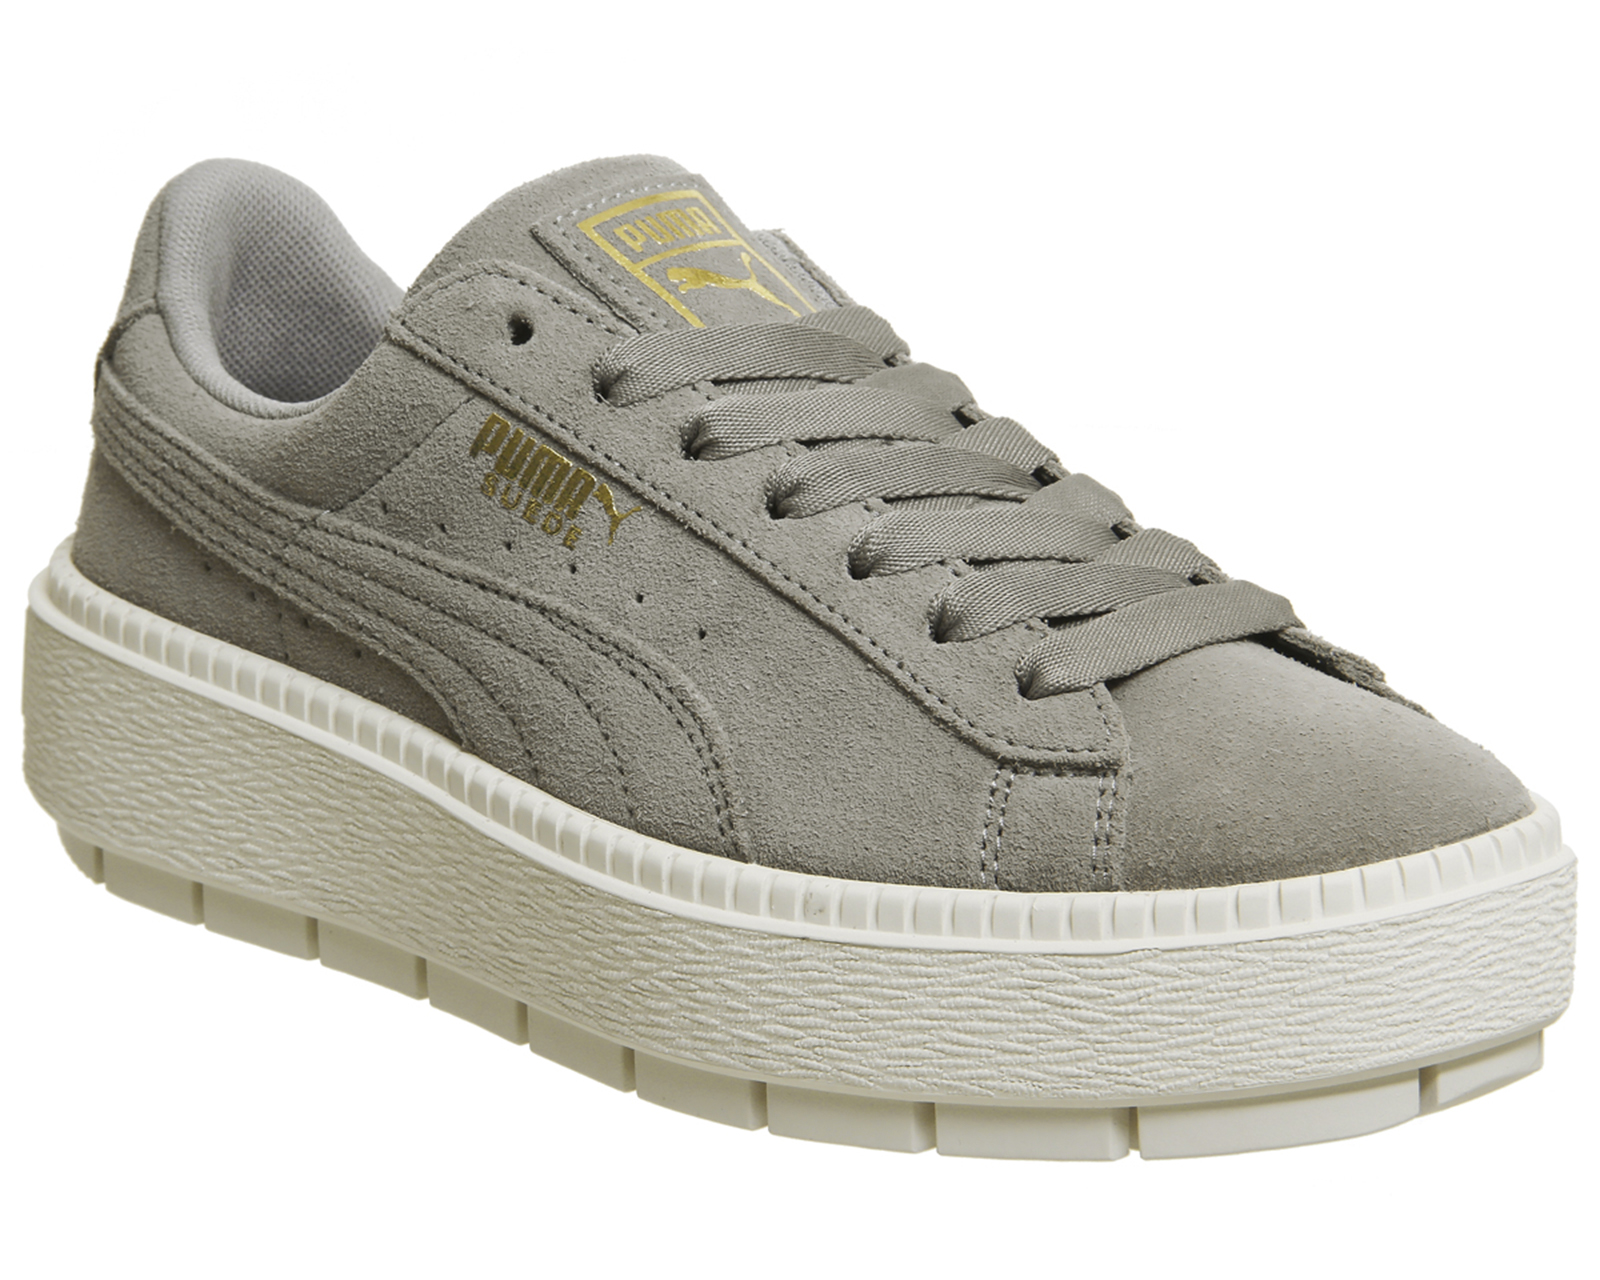 18507f438b3 Sentinel Womens Puma Suede Platform Trace Trainers ROCK RIDGE MARSHMELLOW  Trainers Shoes